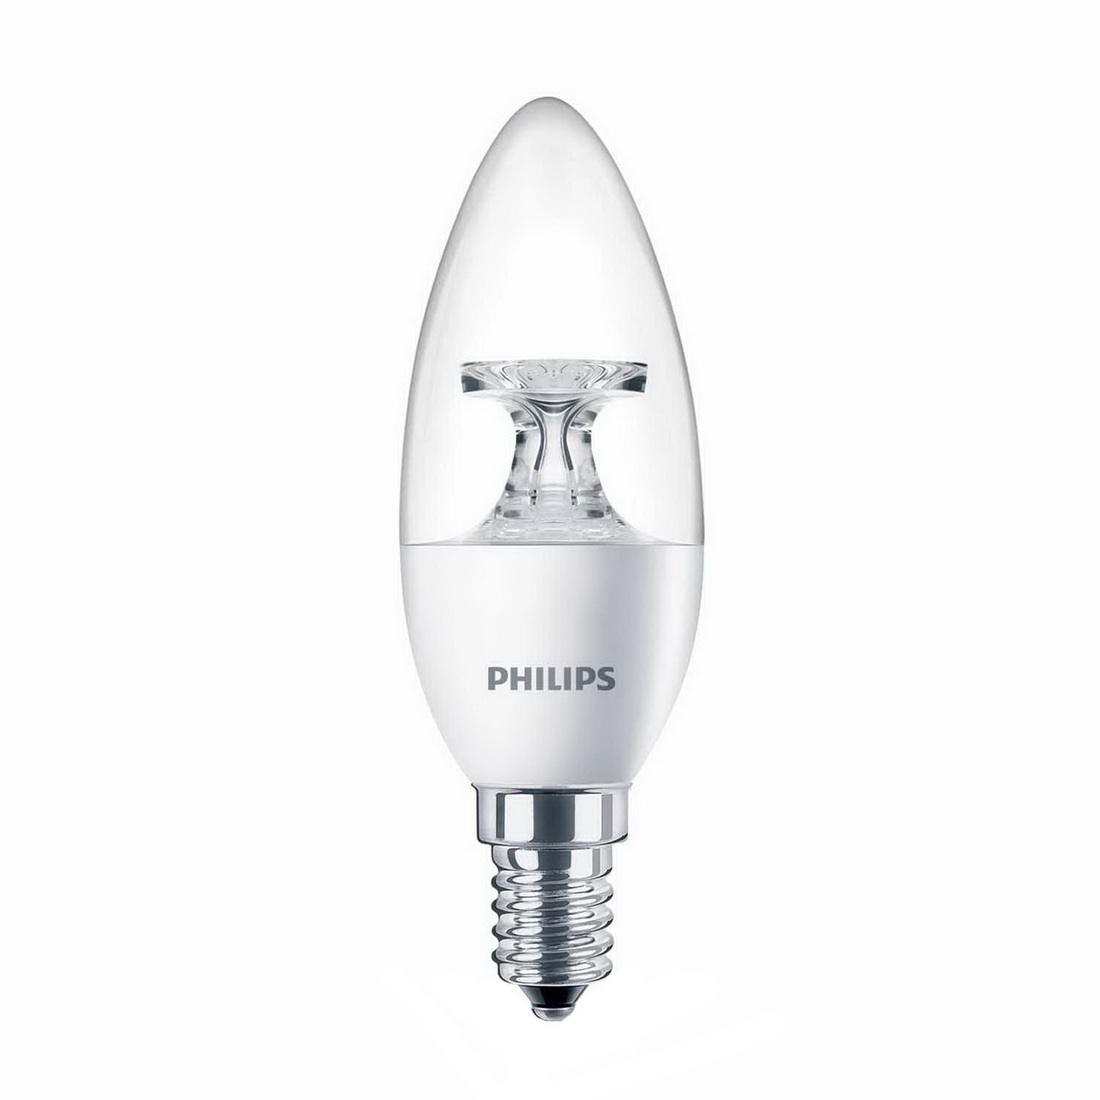 CorePro 4W 250lm E14 2700K B35 Non-Dimmable LED Candle Warm White Clear